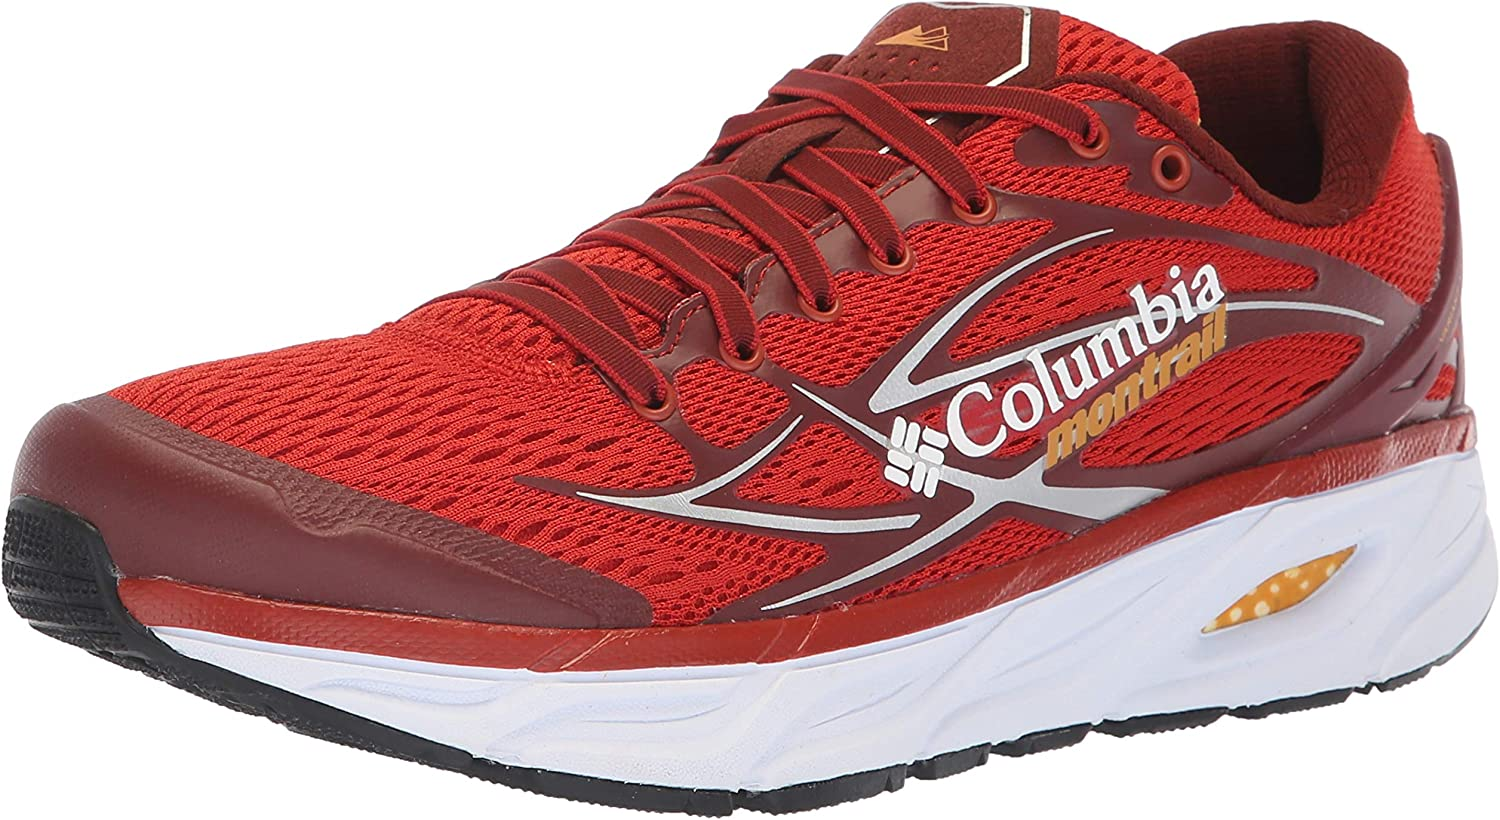 Columbia Montrail Men's Variant X.S.R. Trail Running shoes